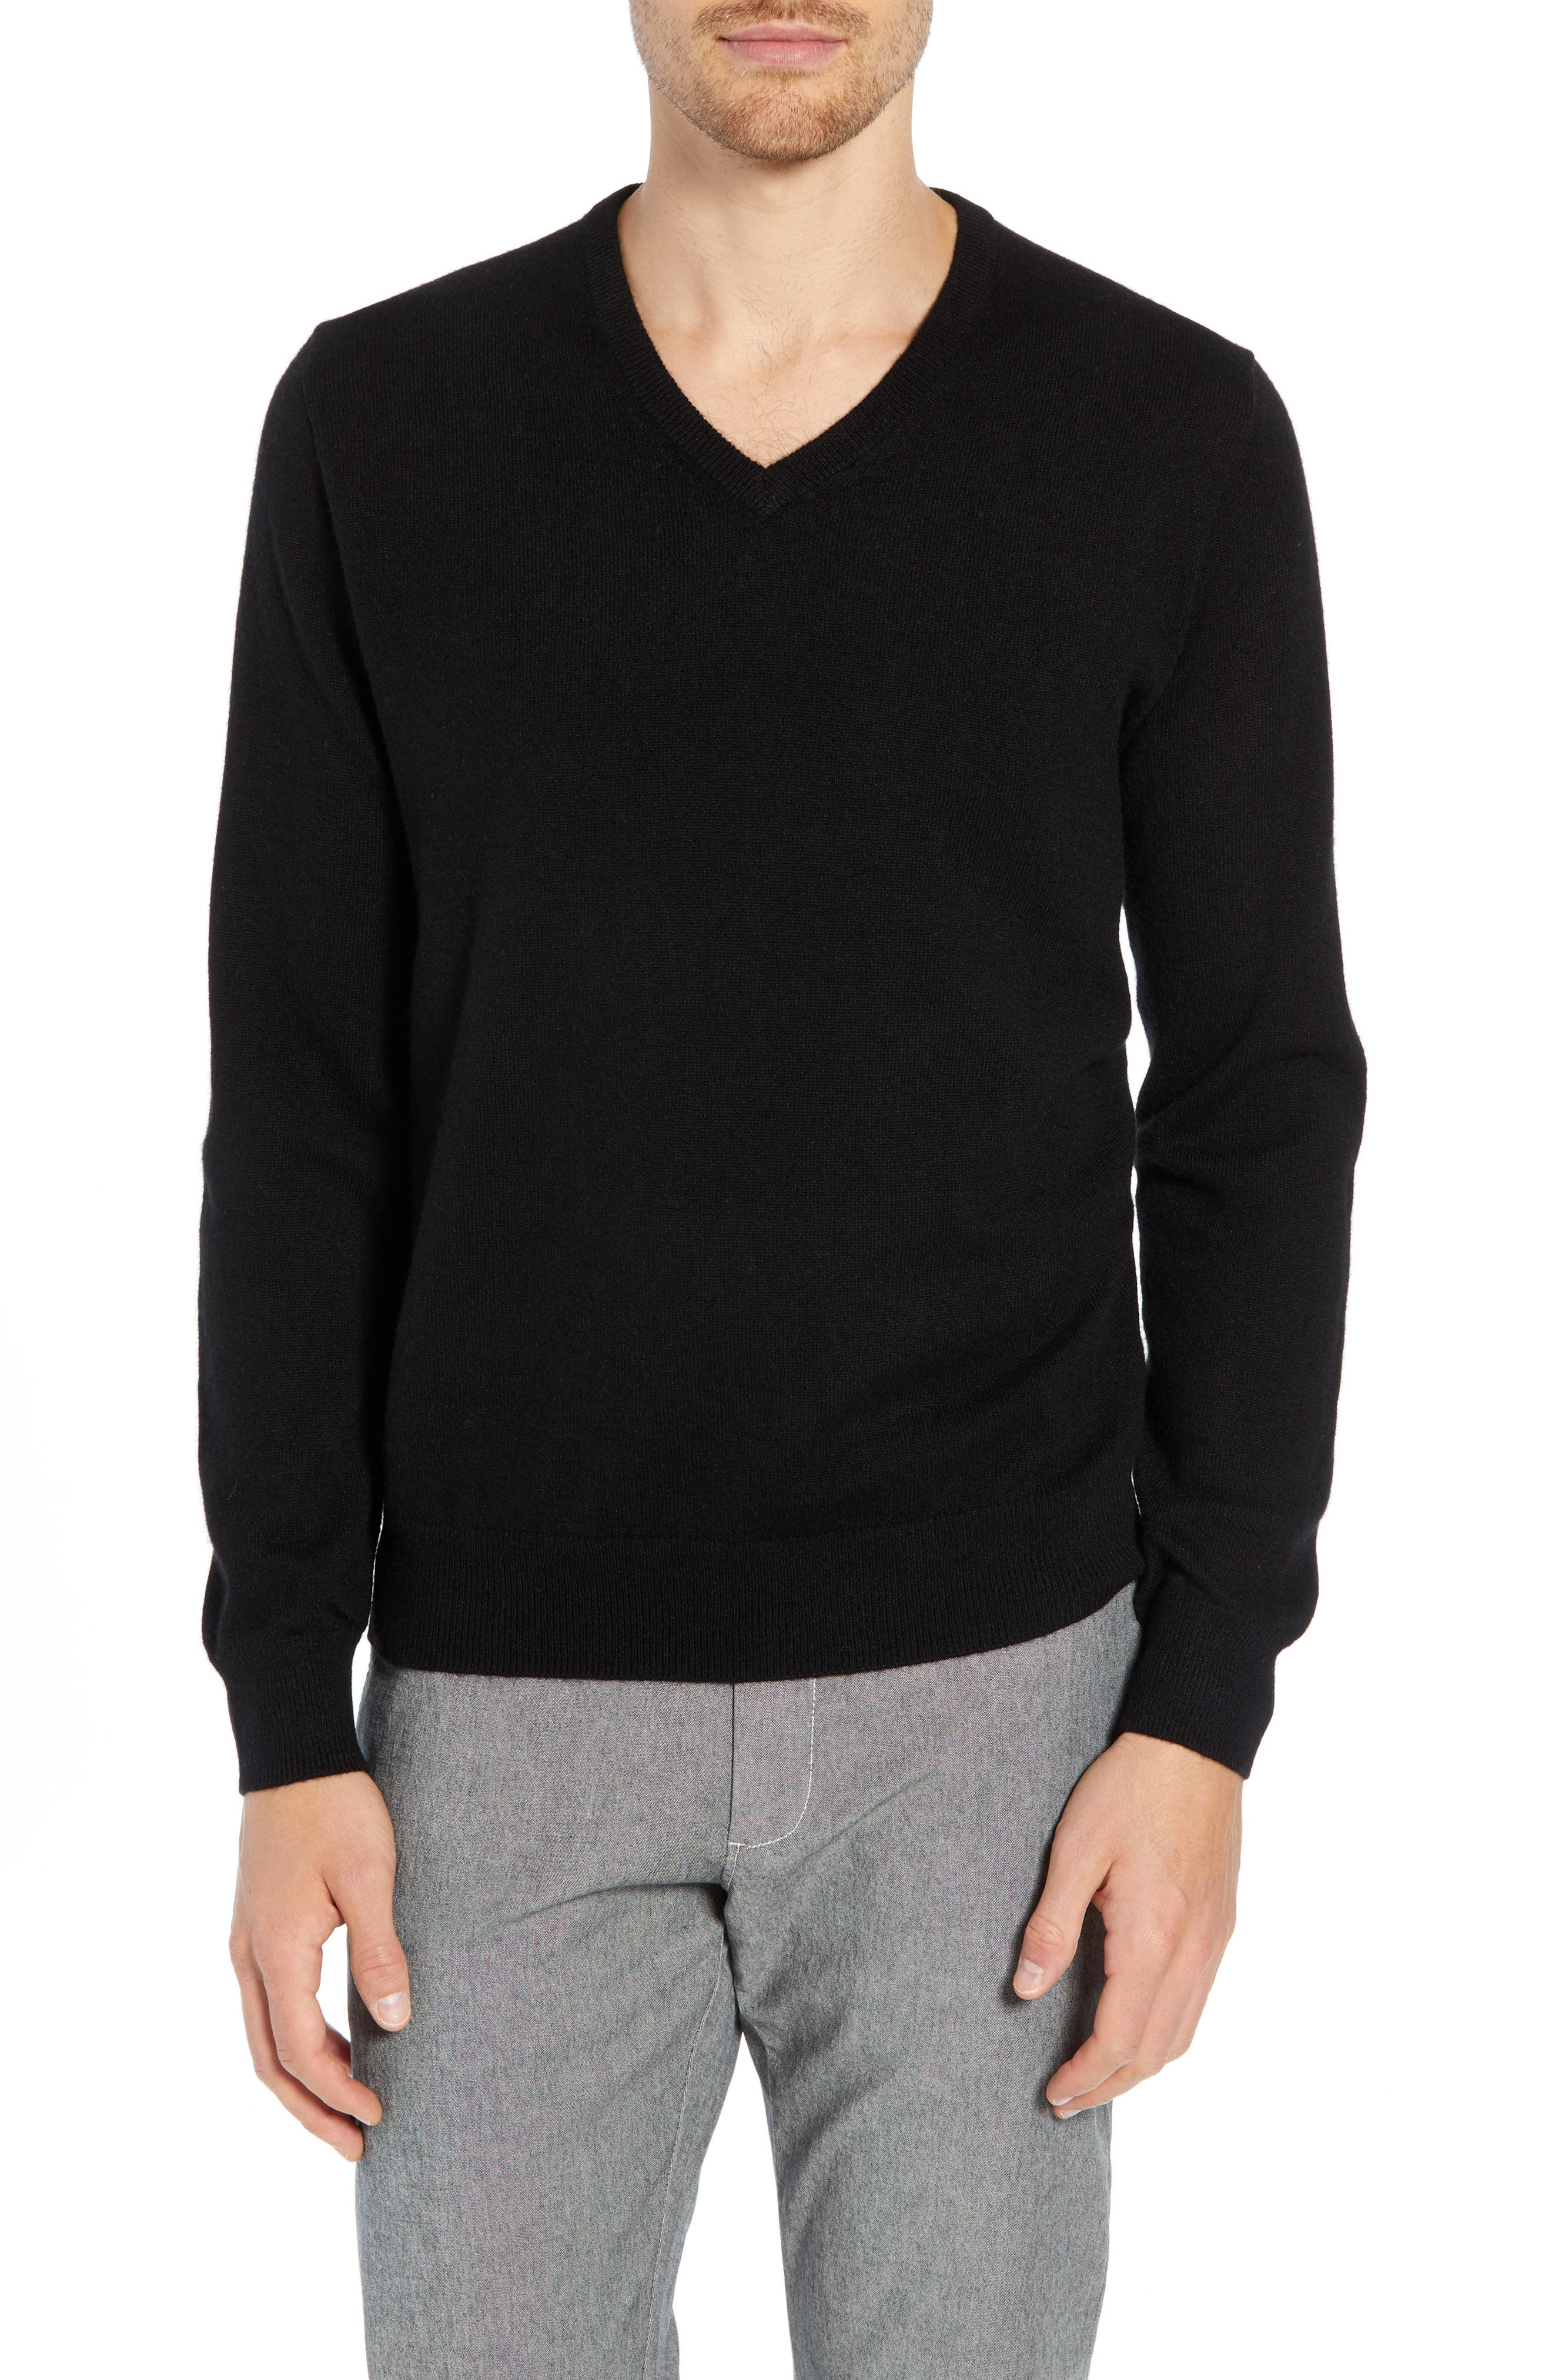 J.CREW,                             Everyday Cashmere Regular Fit V-Neck Sweater,                             Main thumbnail 1, color,                             001